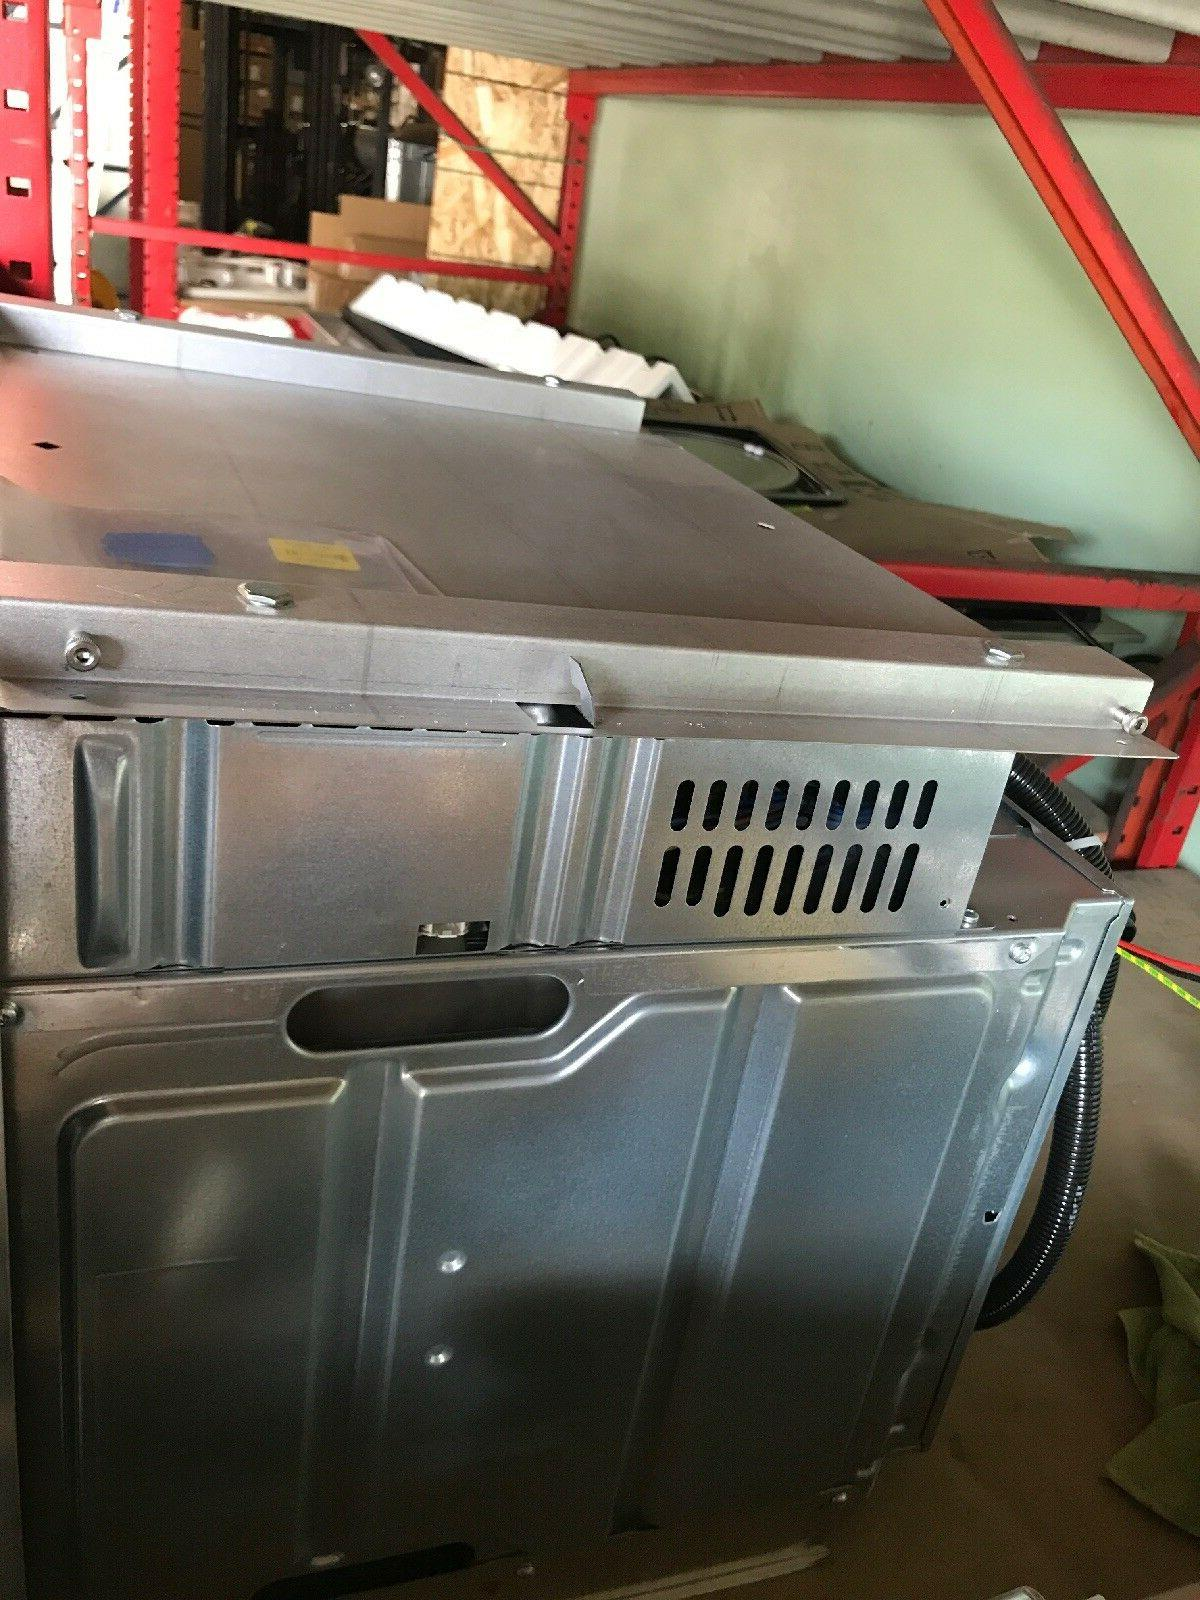 Thermador Oven MES301HS